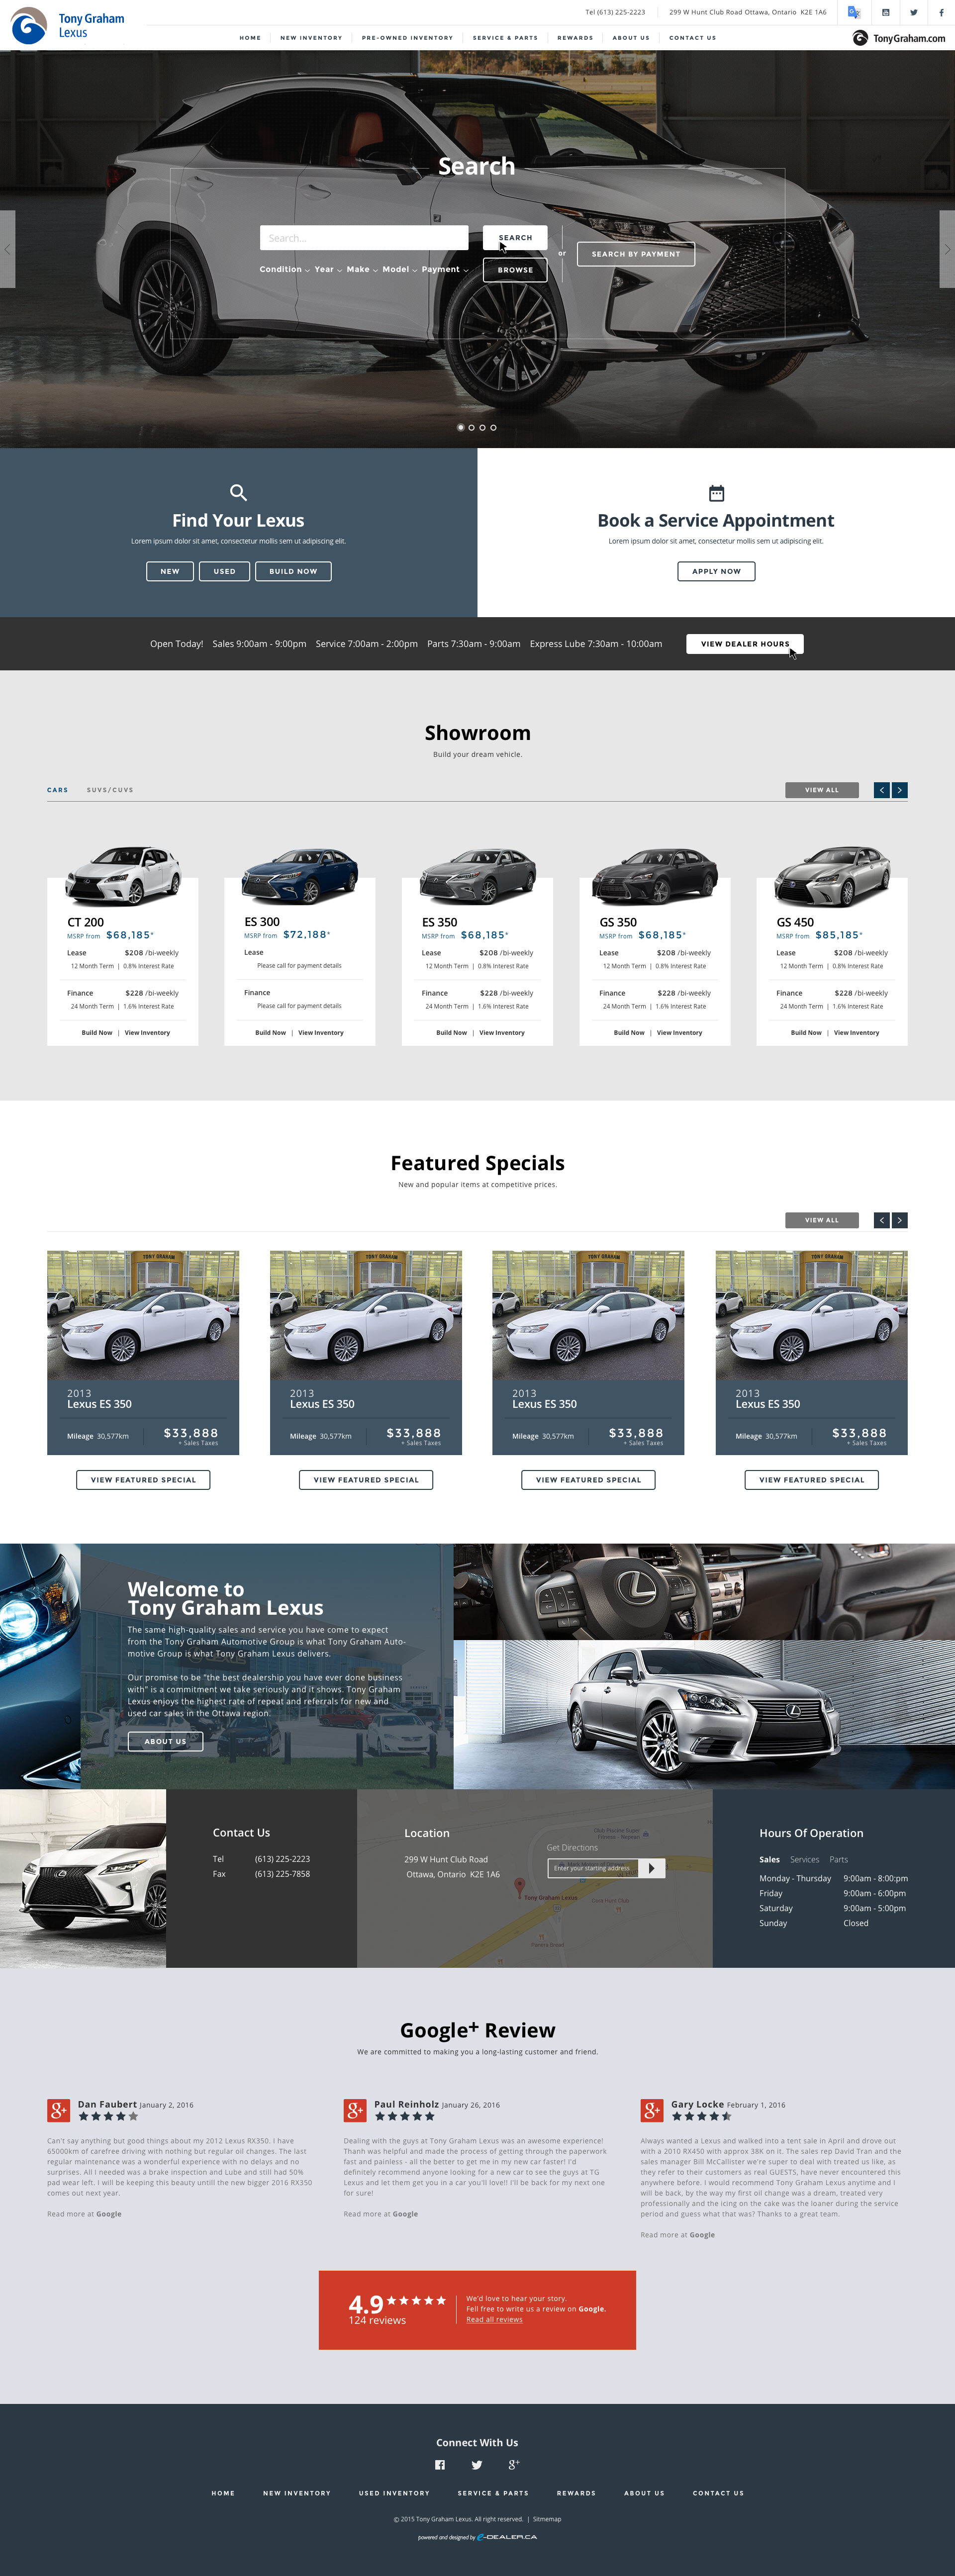 TonyGrahamLexus-Design-Final